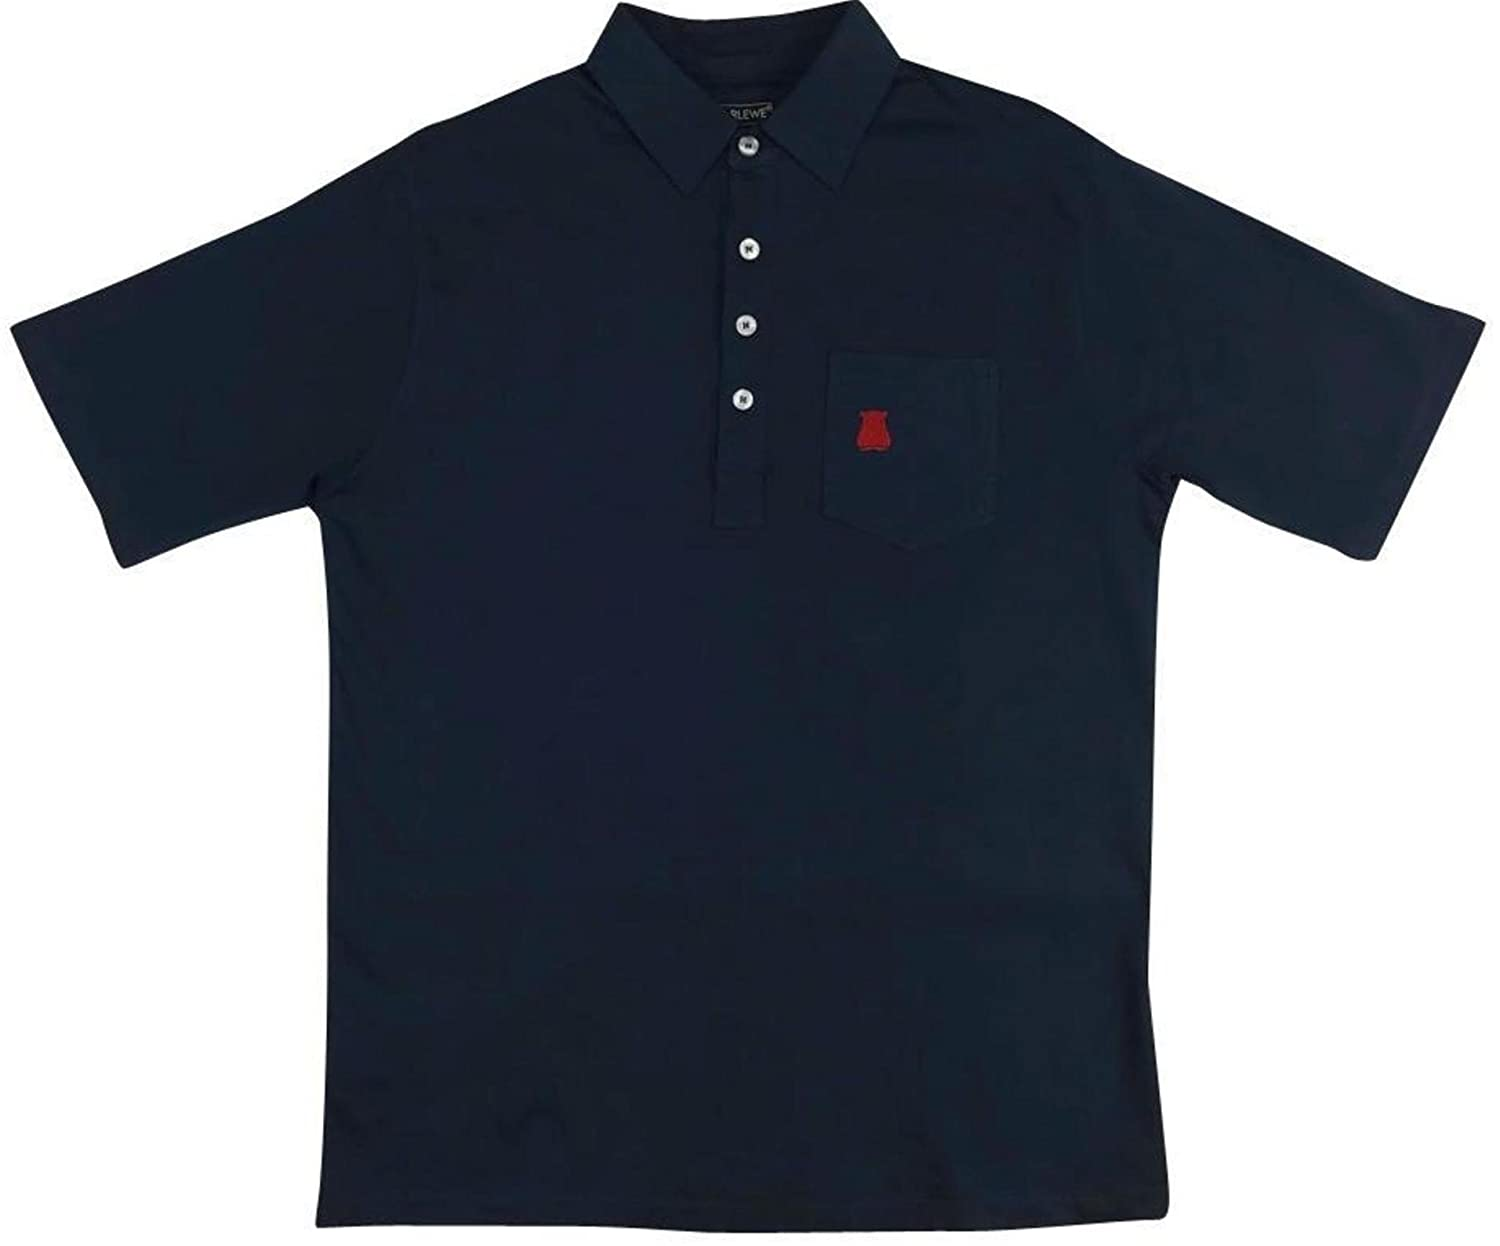 828636136f Made in India COMFORT, EVER HEARD OF IT? We started with what we desire  most: comfort. Where we ended was the most comfortable men's polo shirt you  will ...